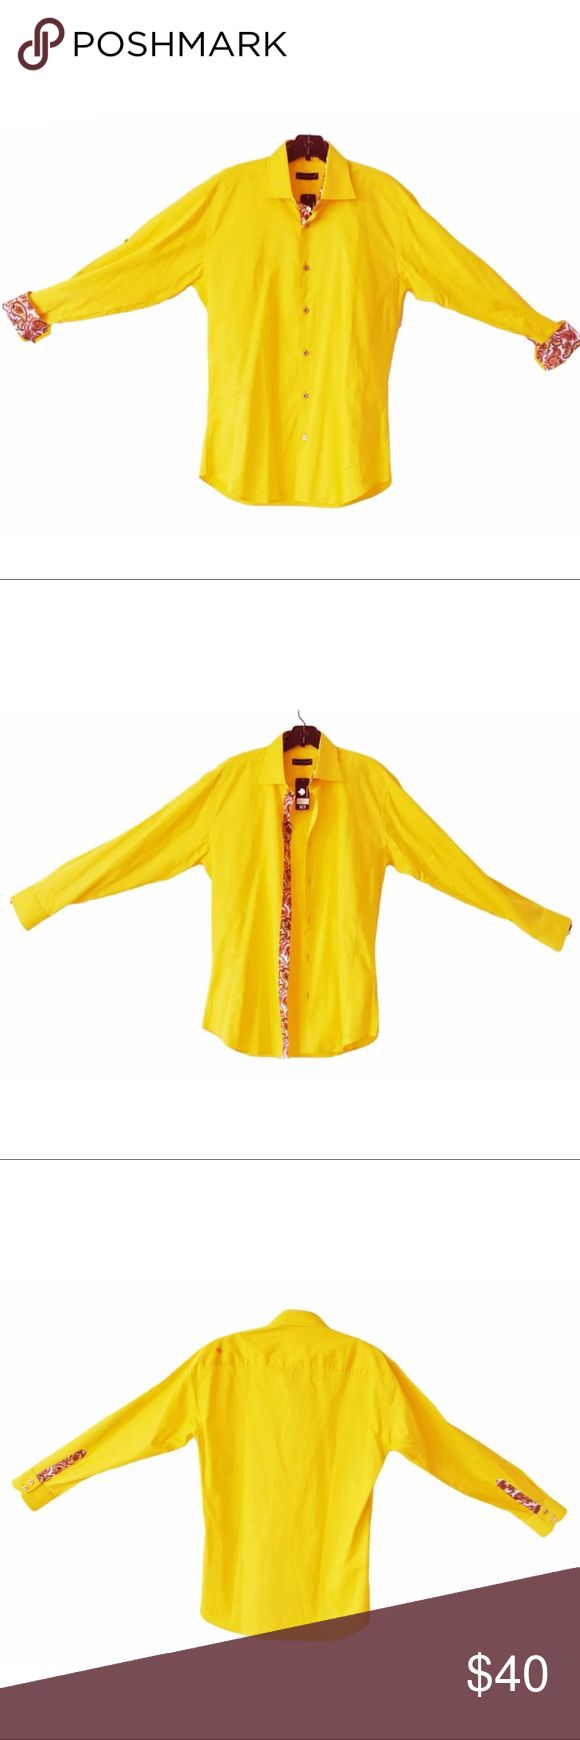 "JARED LANG Golden Yellow Contrasting Cuffs Placket Jared Lang New with tags, 100% cotton shirt by Jared Lang. Gorgeous golden yellow with colorful placket and cuffs. Long sleeves can convert to button up sleeves. Size Medium. Approximate measurements taken flat across: Shoulder to Shoulder: 20"" Underarm to Underarm: 21.5"" Sleeve Length: 24.5"" Length: 32.5"" (Measured on back side, from top of collar to bottom of hem) No Trades Jared Lang Shirts Casual Button Down Shirts"